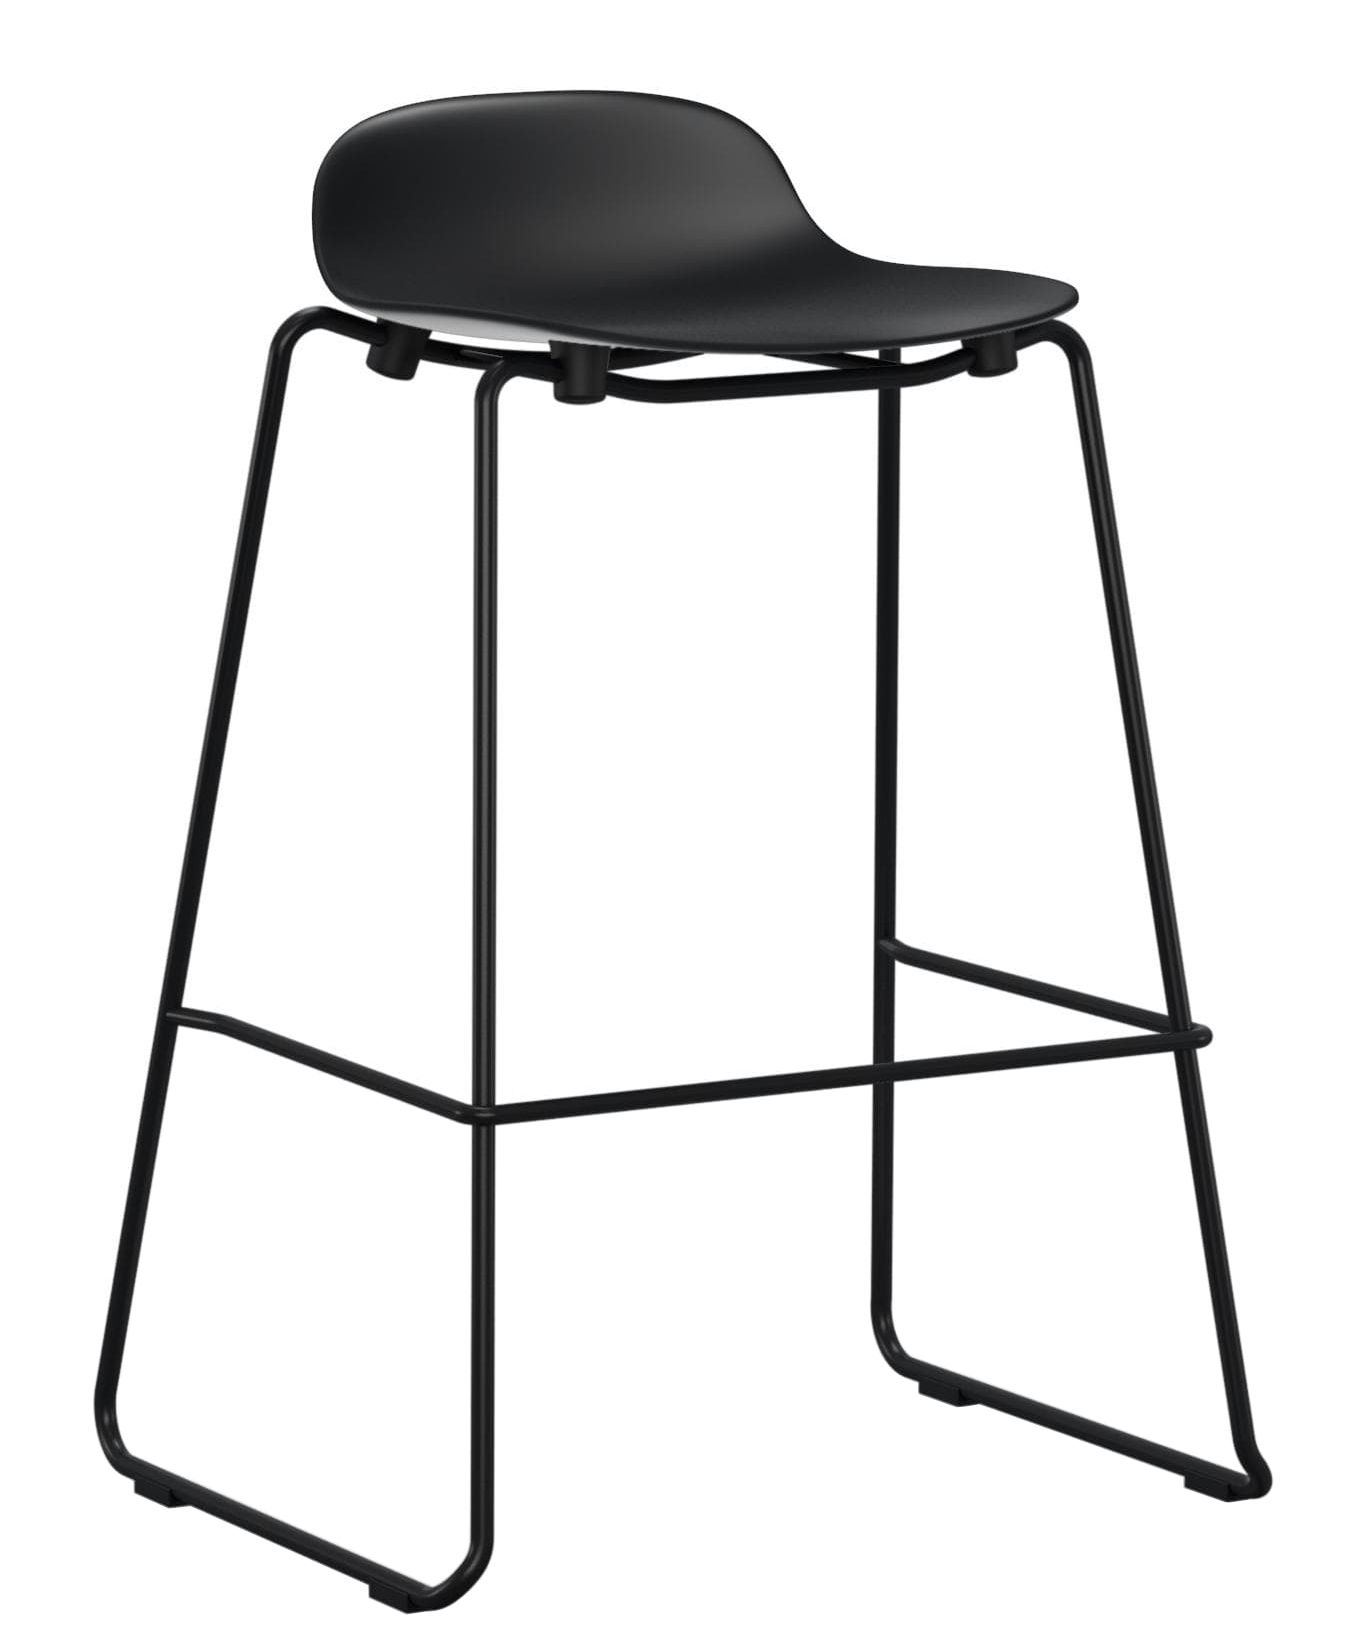 Furniture - Bar Stools - Form Bar stool - stackable / Metal legs - H 75 cm by Normann Copenhagen - Black - Lacquered steel, Polypropylene